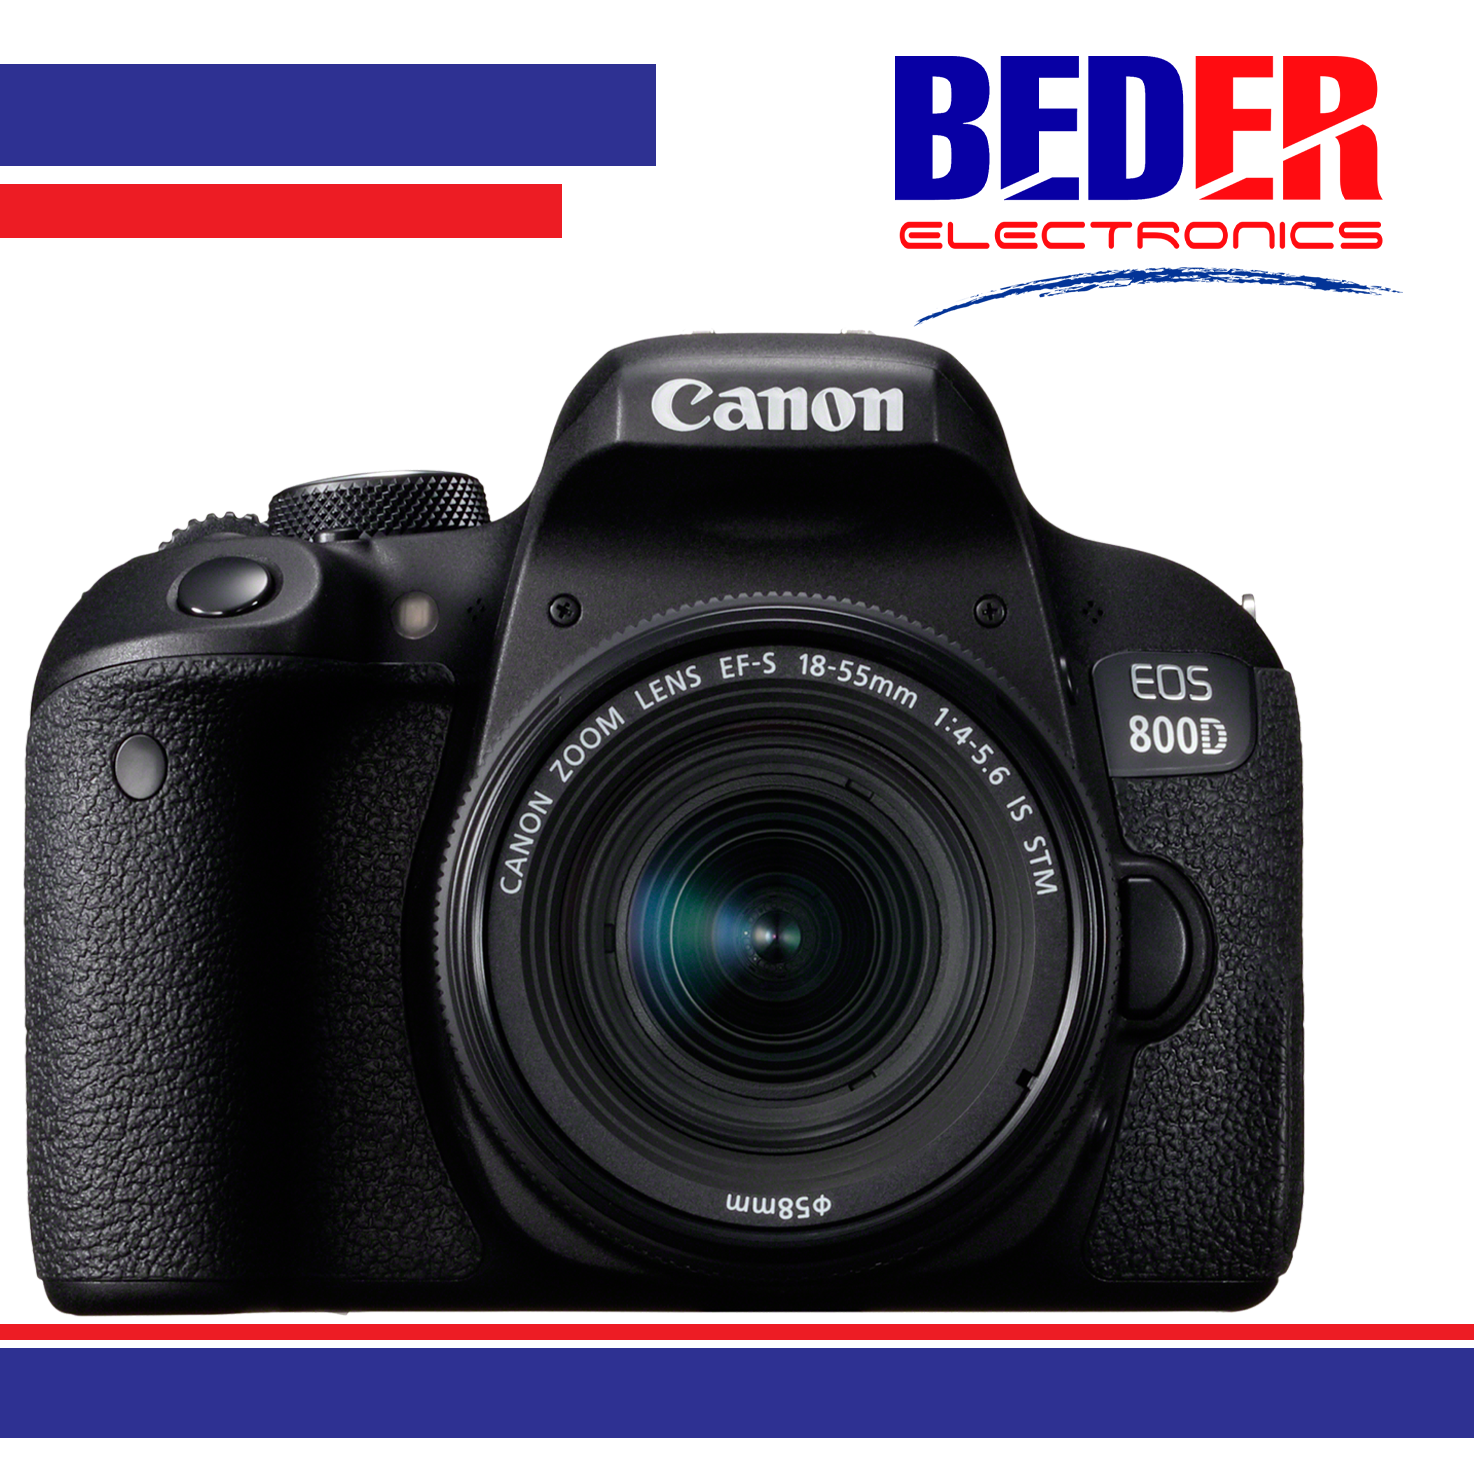 Canon EOS 800D Digital SLR with 18-55